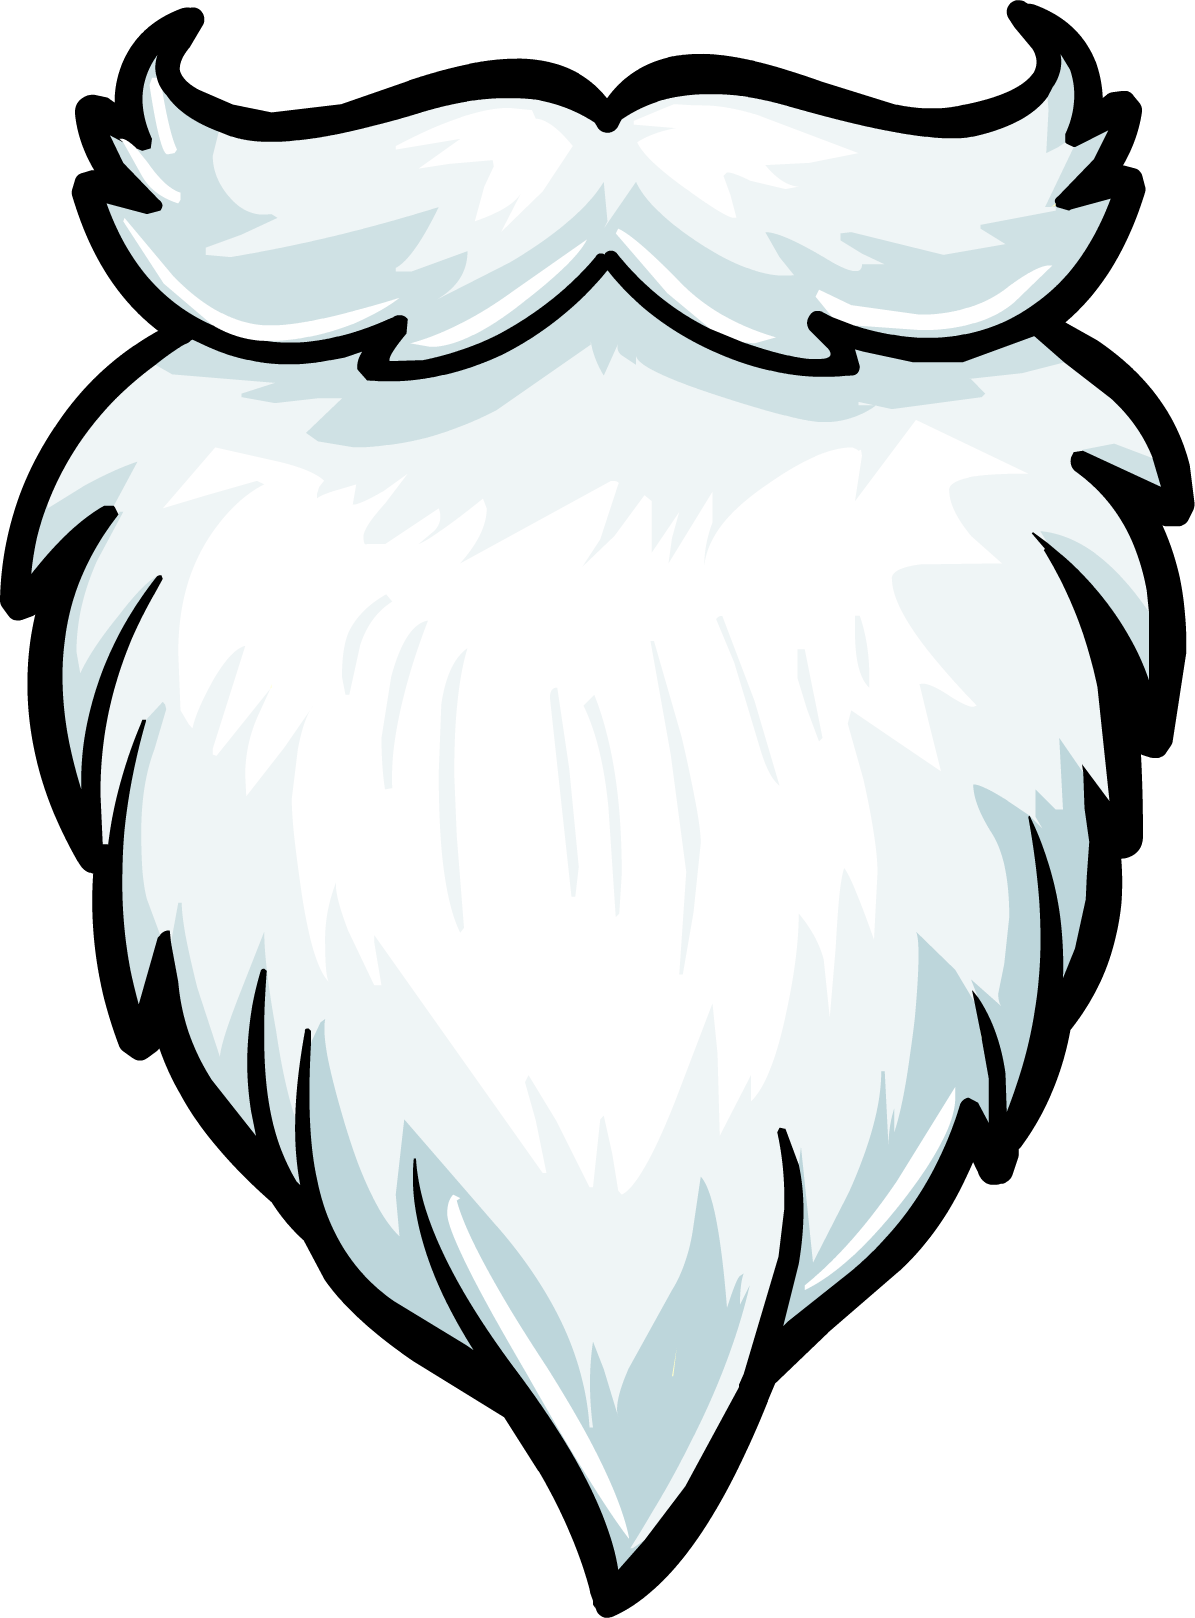 Santa Beard Png Images & Pictures - Becuo